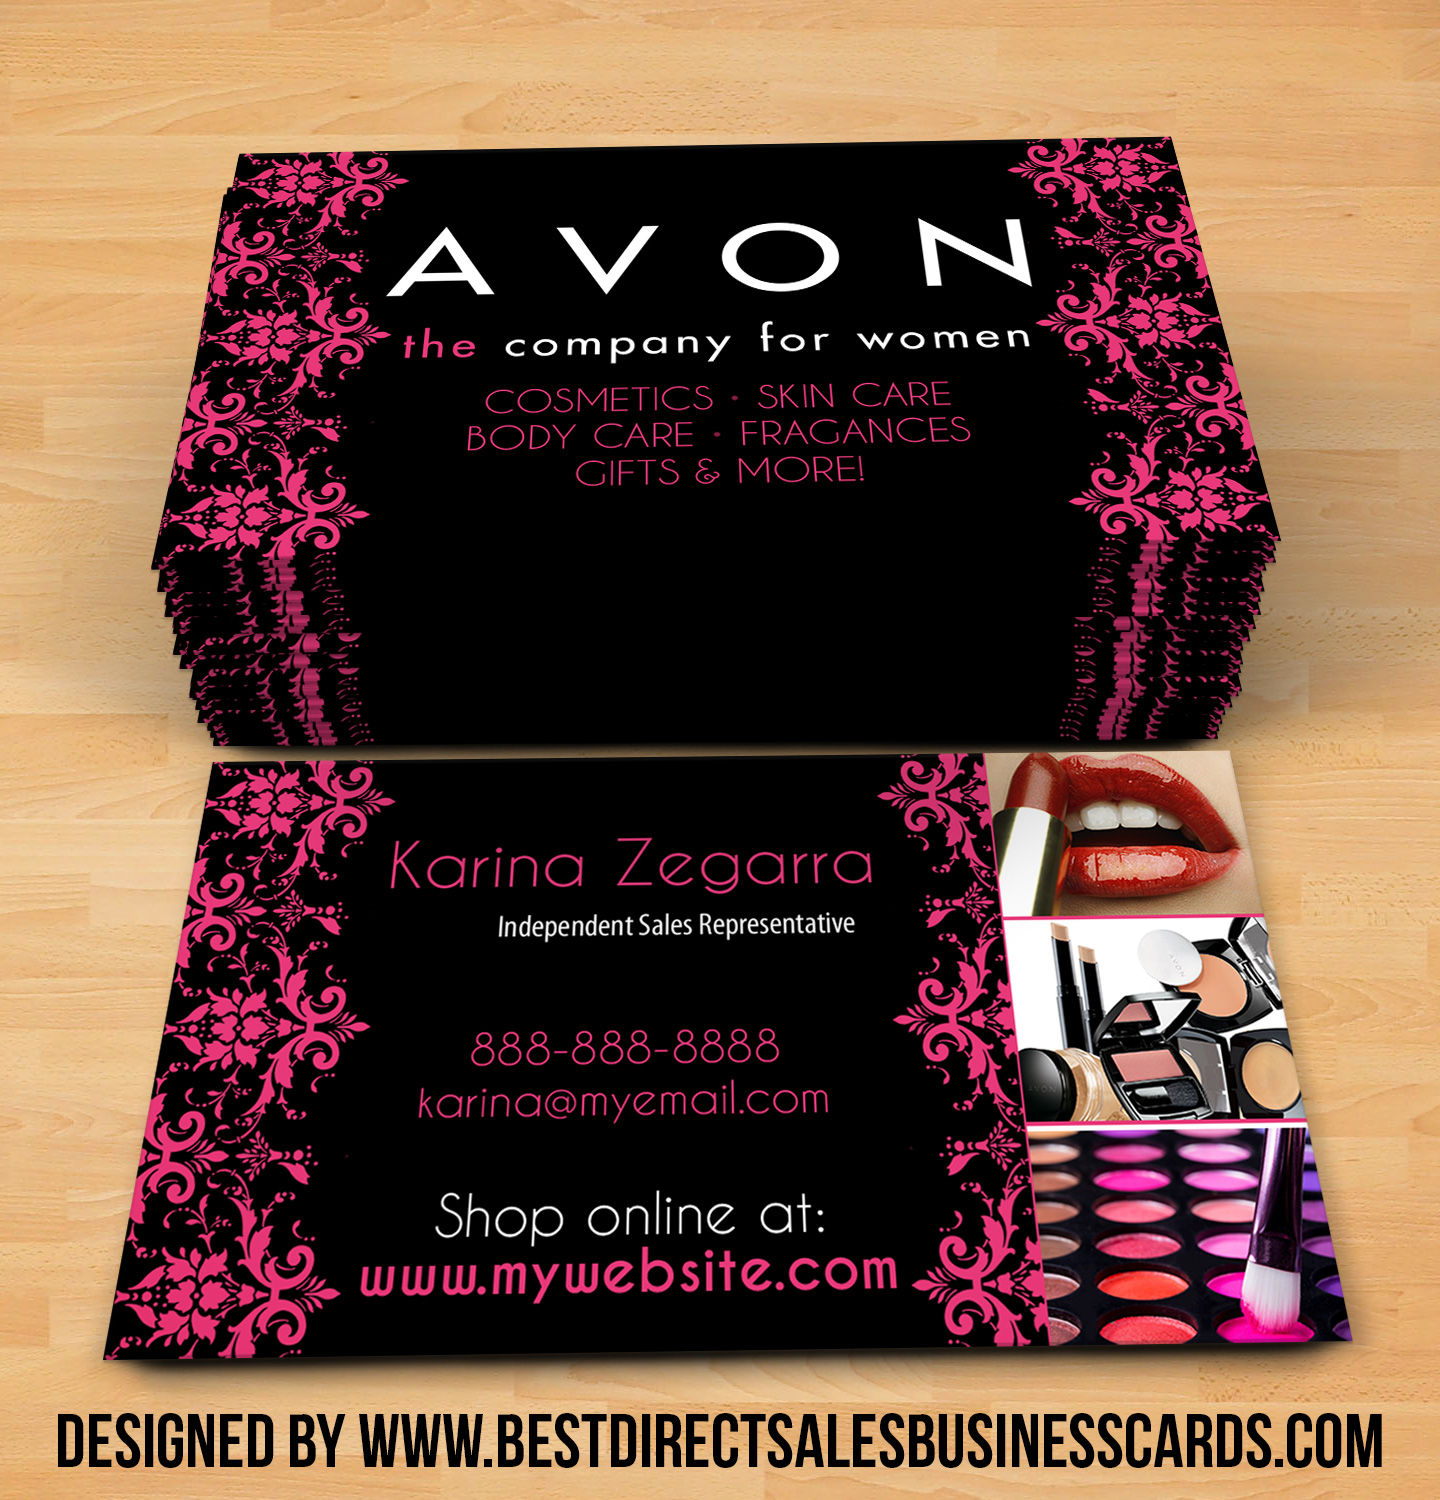 Avon Business Cards style 5 · KZ Creative Services · Online Store ...